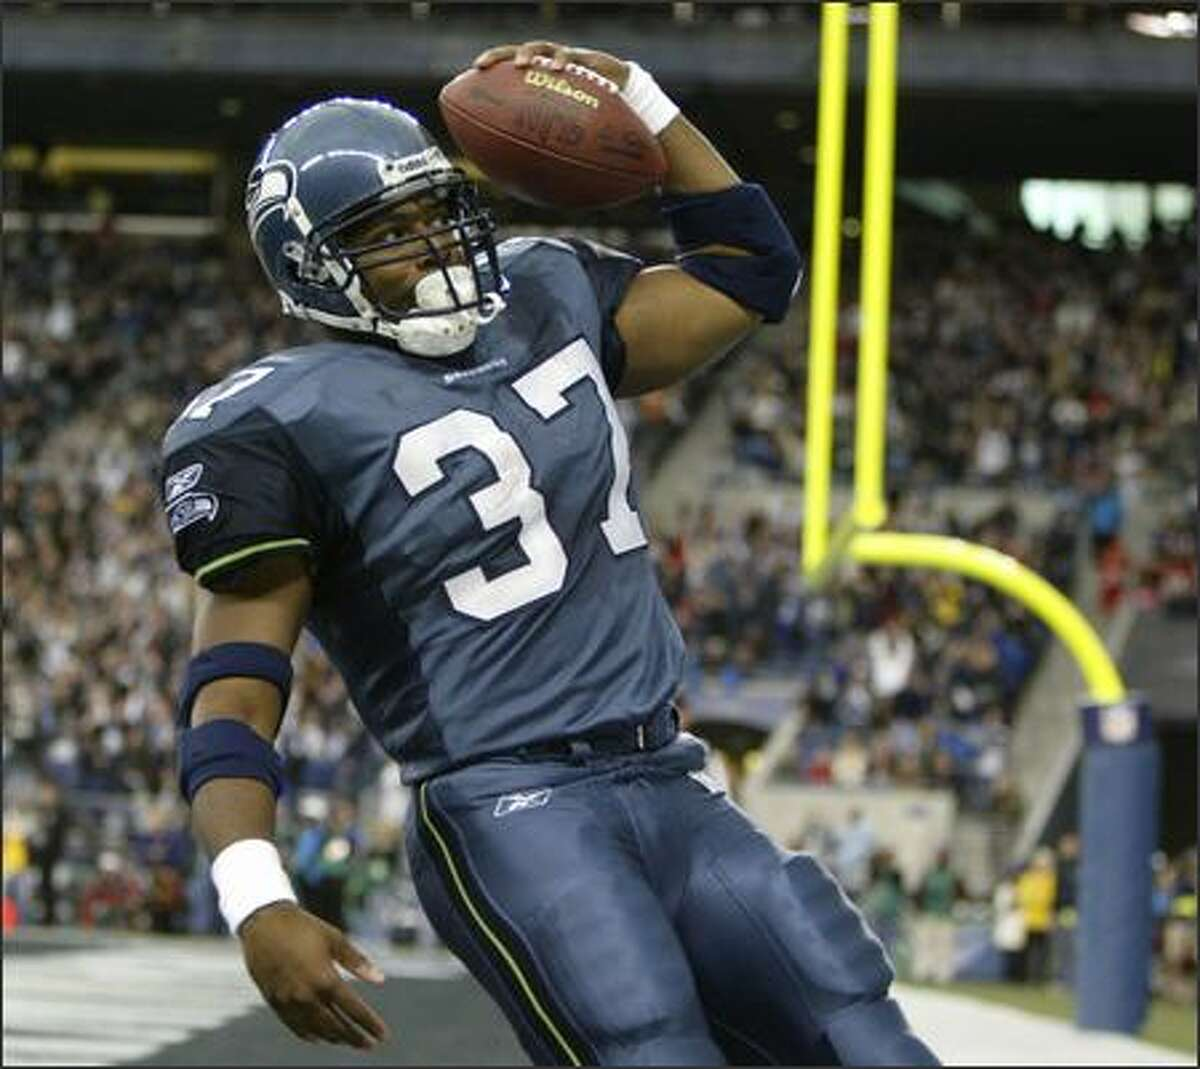 Shaun Alexander goes into his